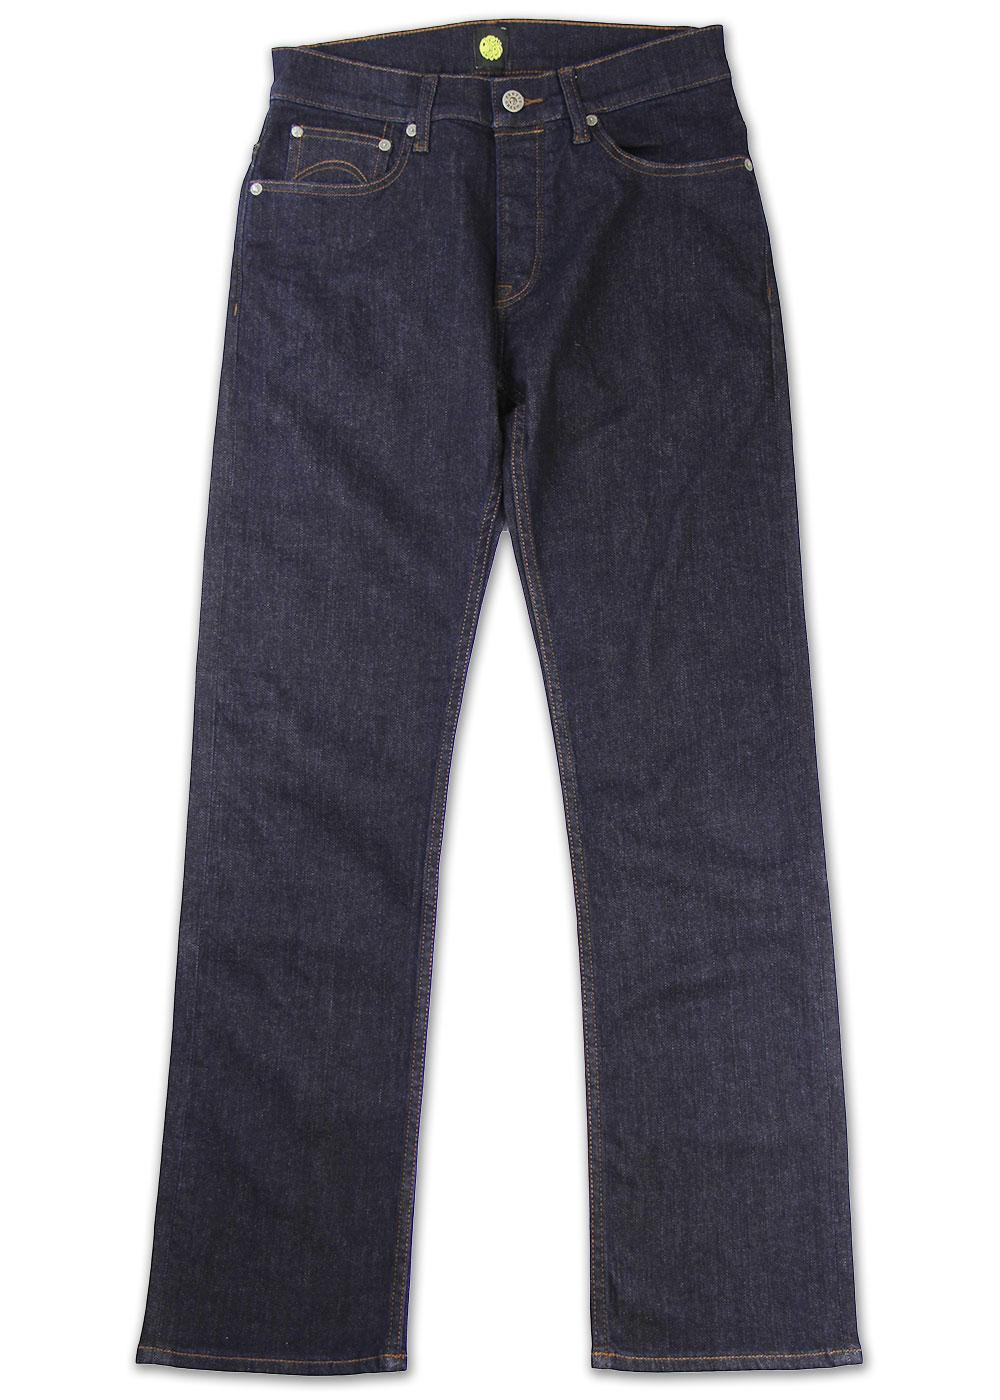 PRETTY GREEN Regular Straight Leg Rinse Wash Jeans